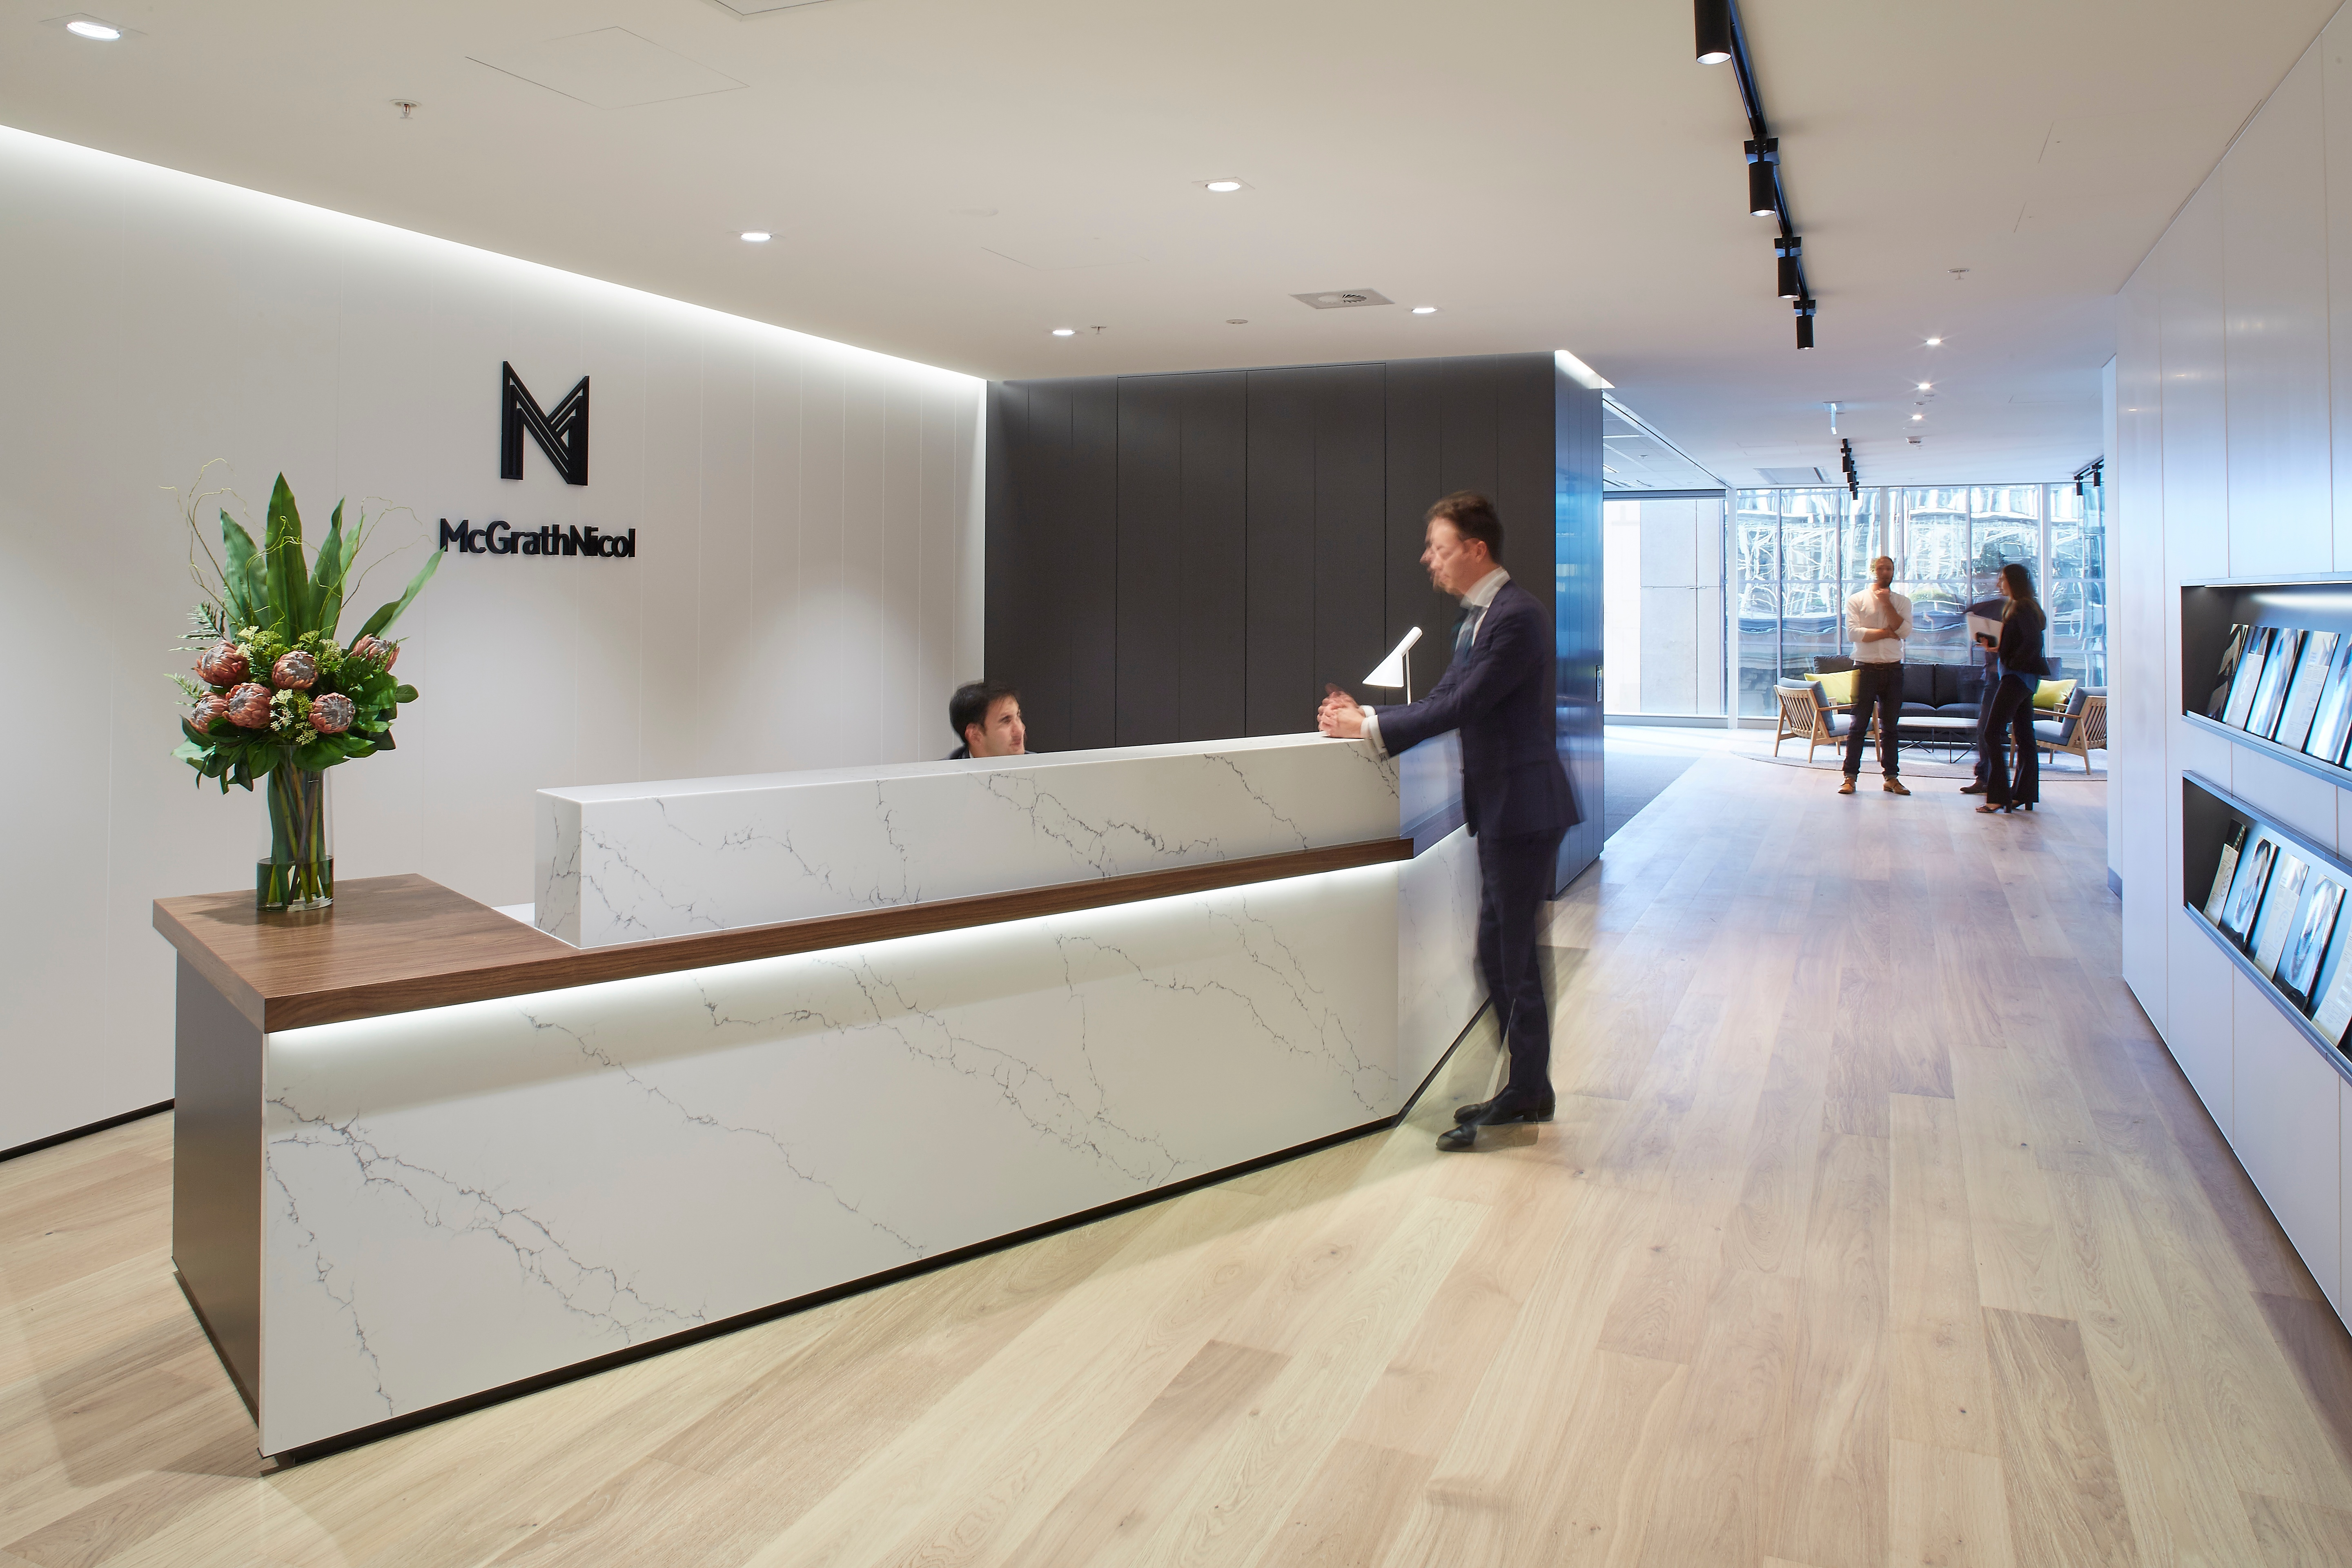 Office Design Trends McGrath_Nicol by PCG